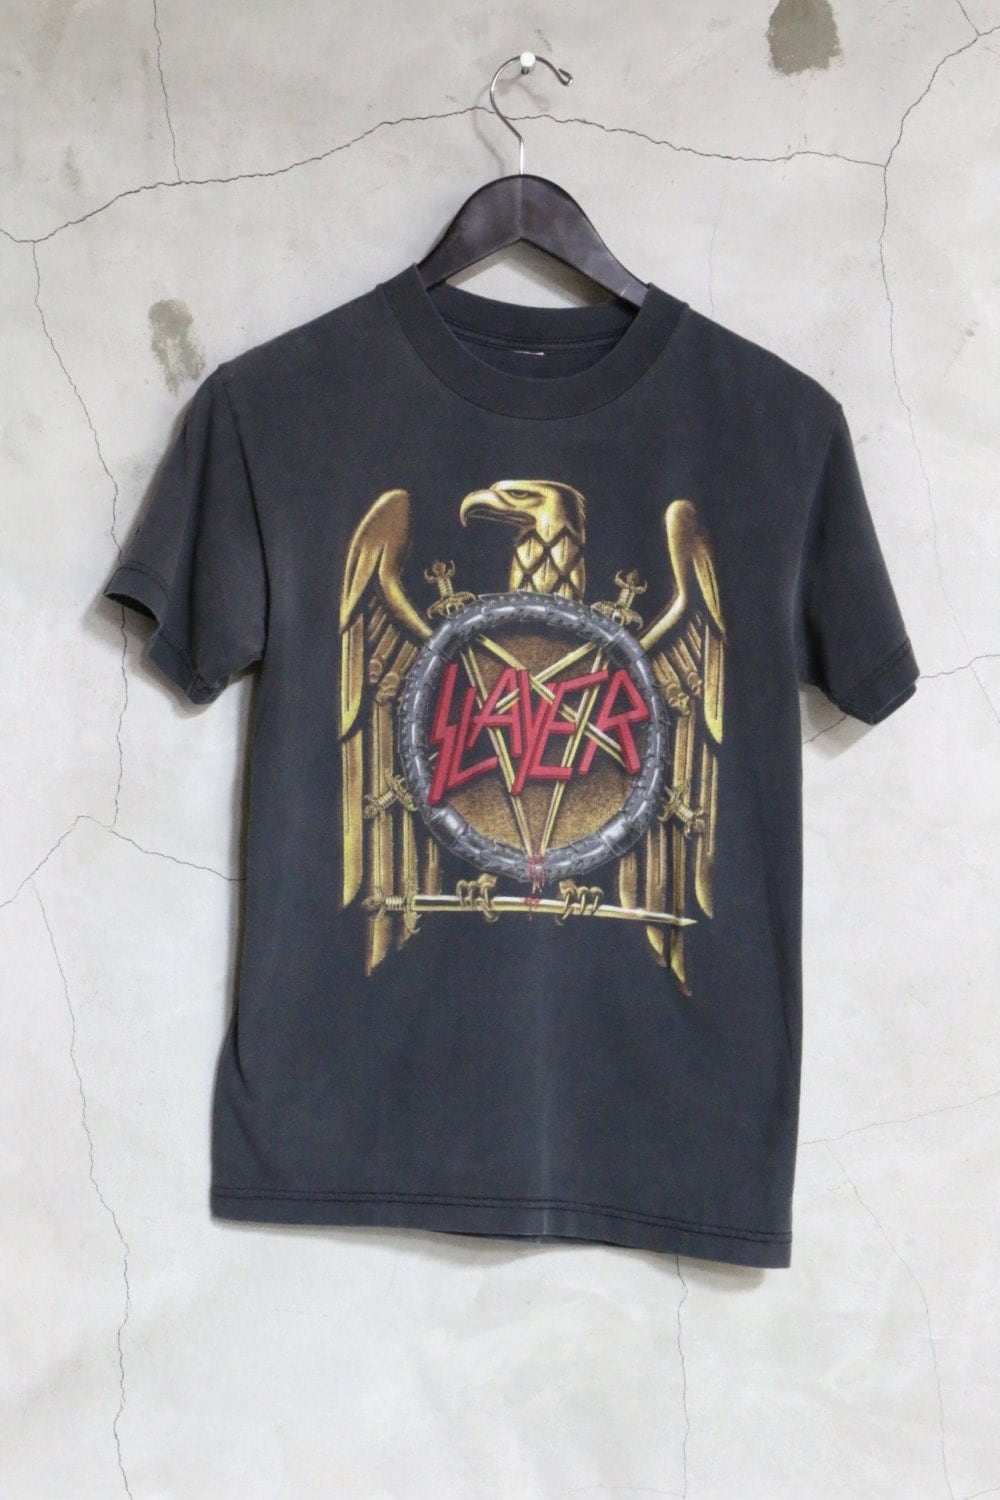 Vintage slayer t shirt best naked ladies for Best selling t shirts on etsy